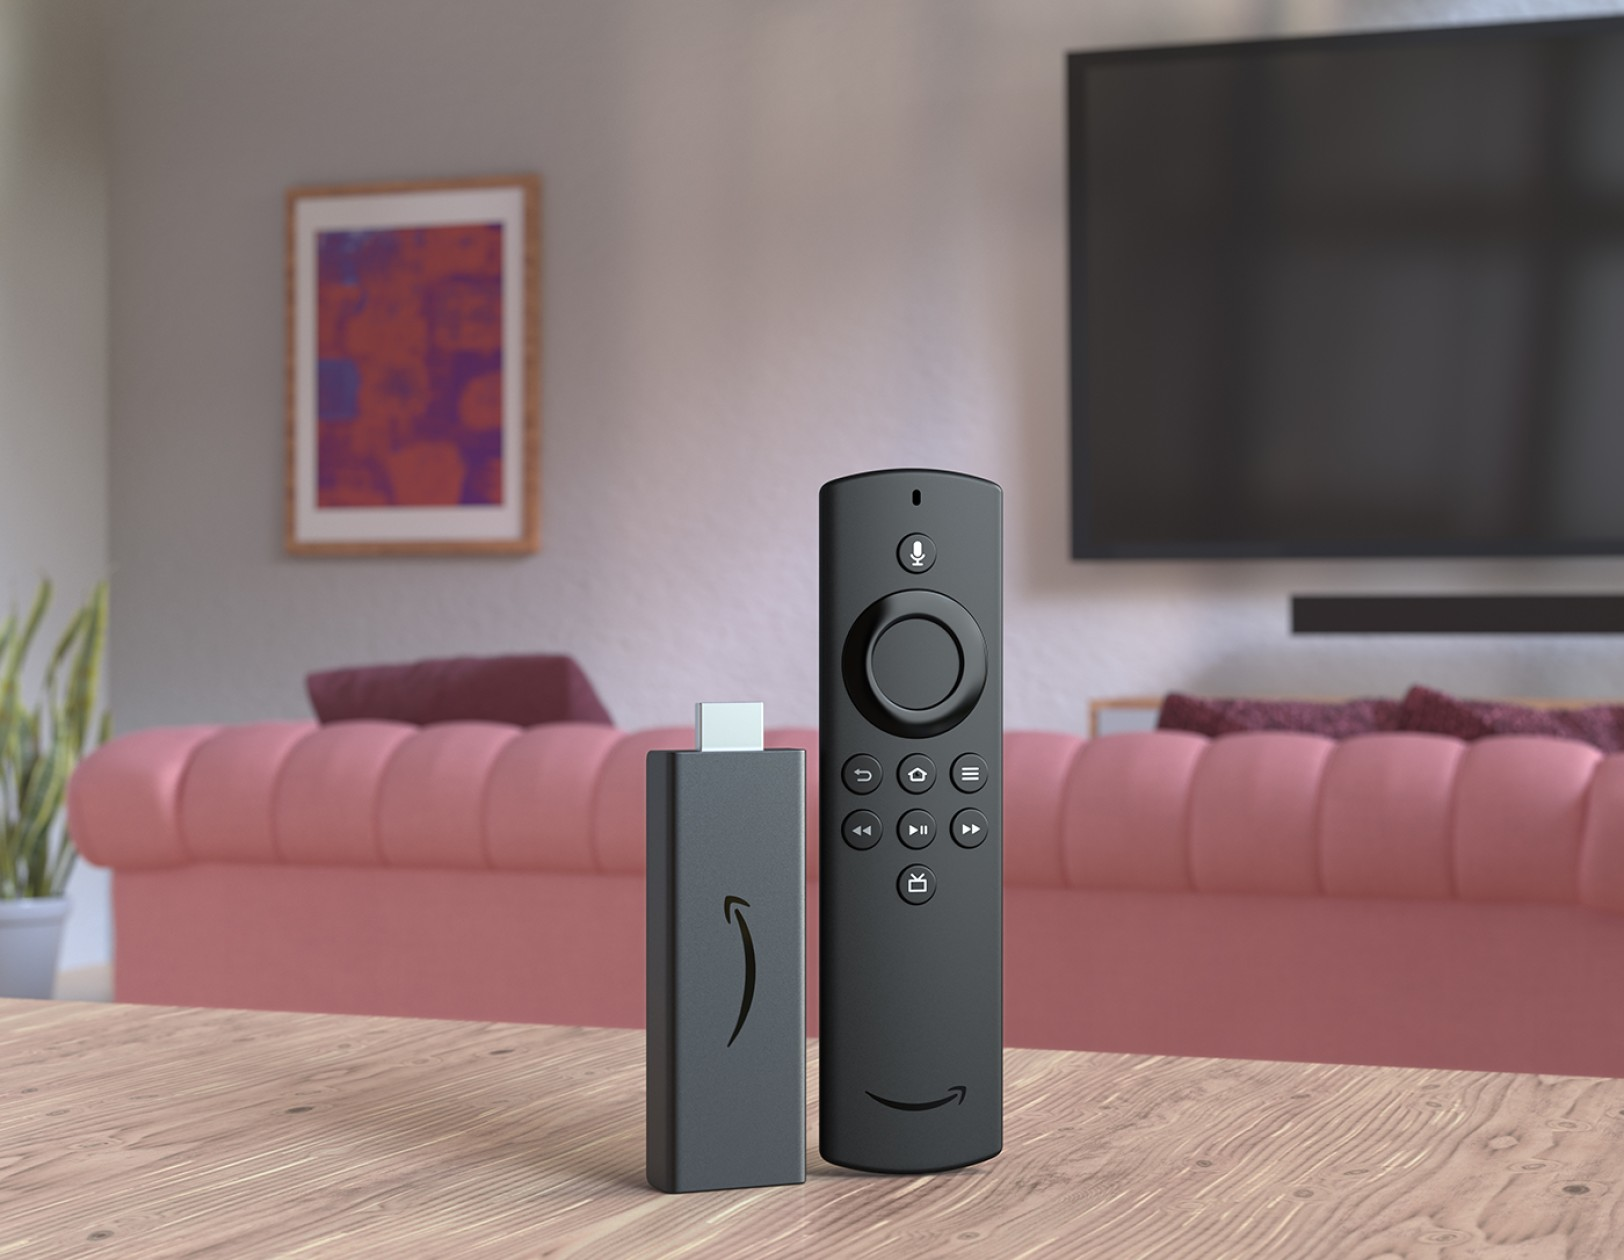 Amazon unveils upgraded Fire TV Stick, lower-cost Fire TV Stick Lite